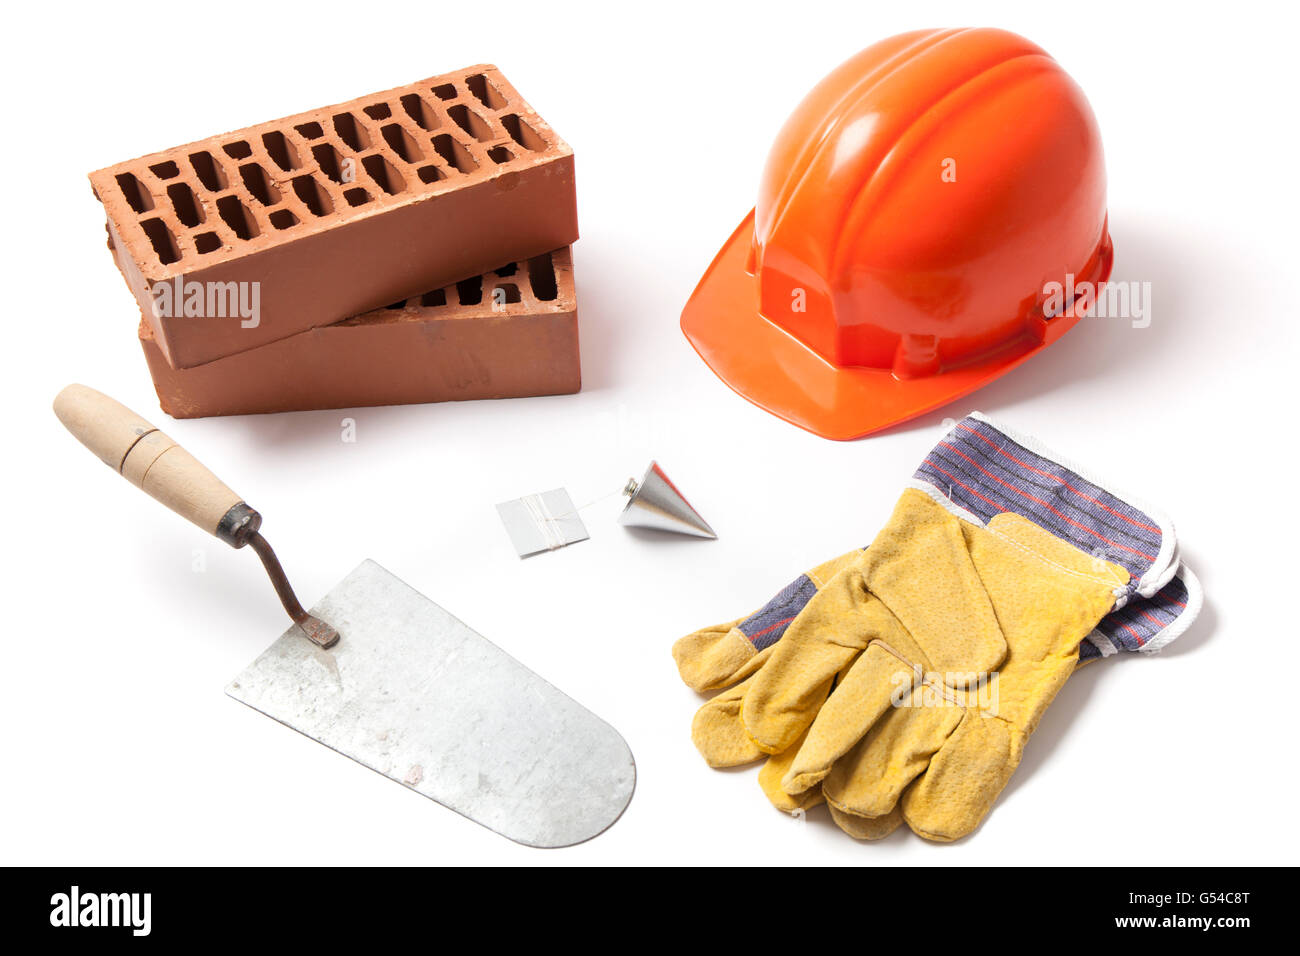 Several construction accessories trowel, bricks, plummet, hard hat and gloves isolated on white background. - Stock Image